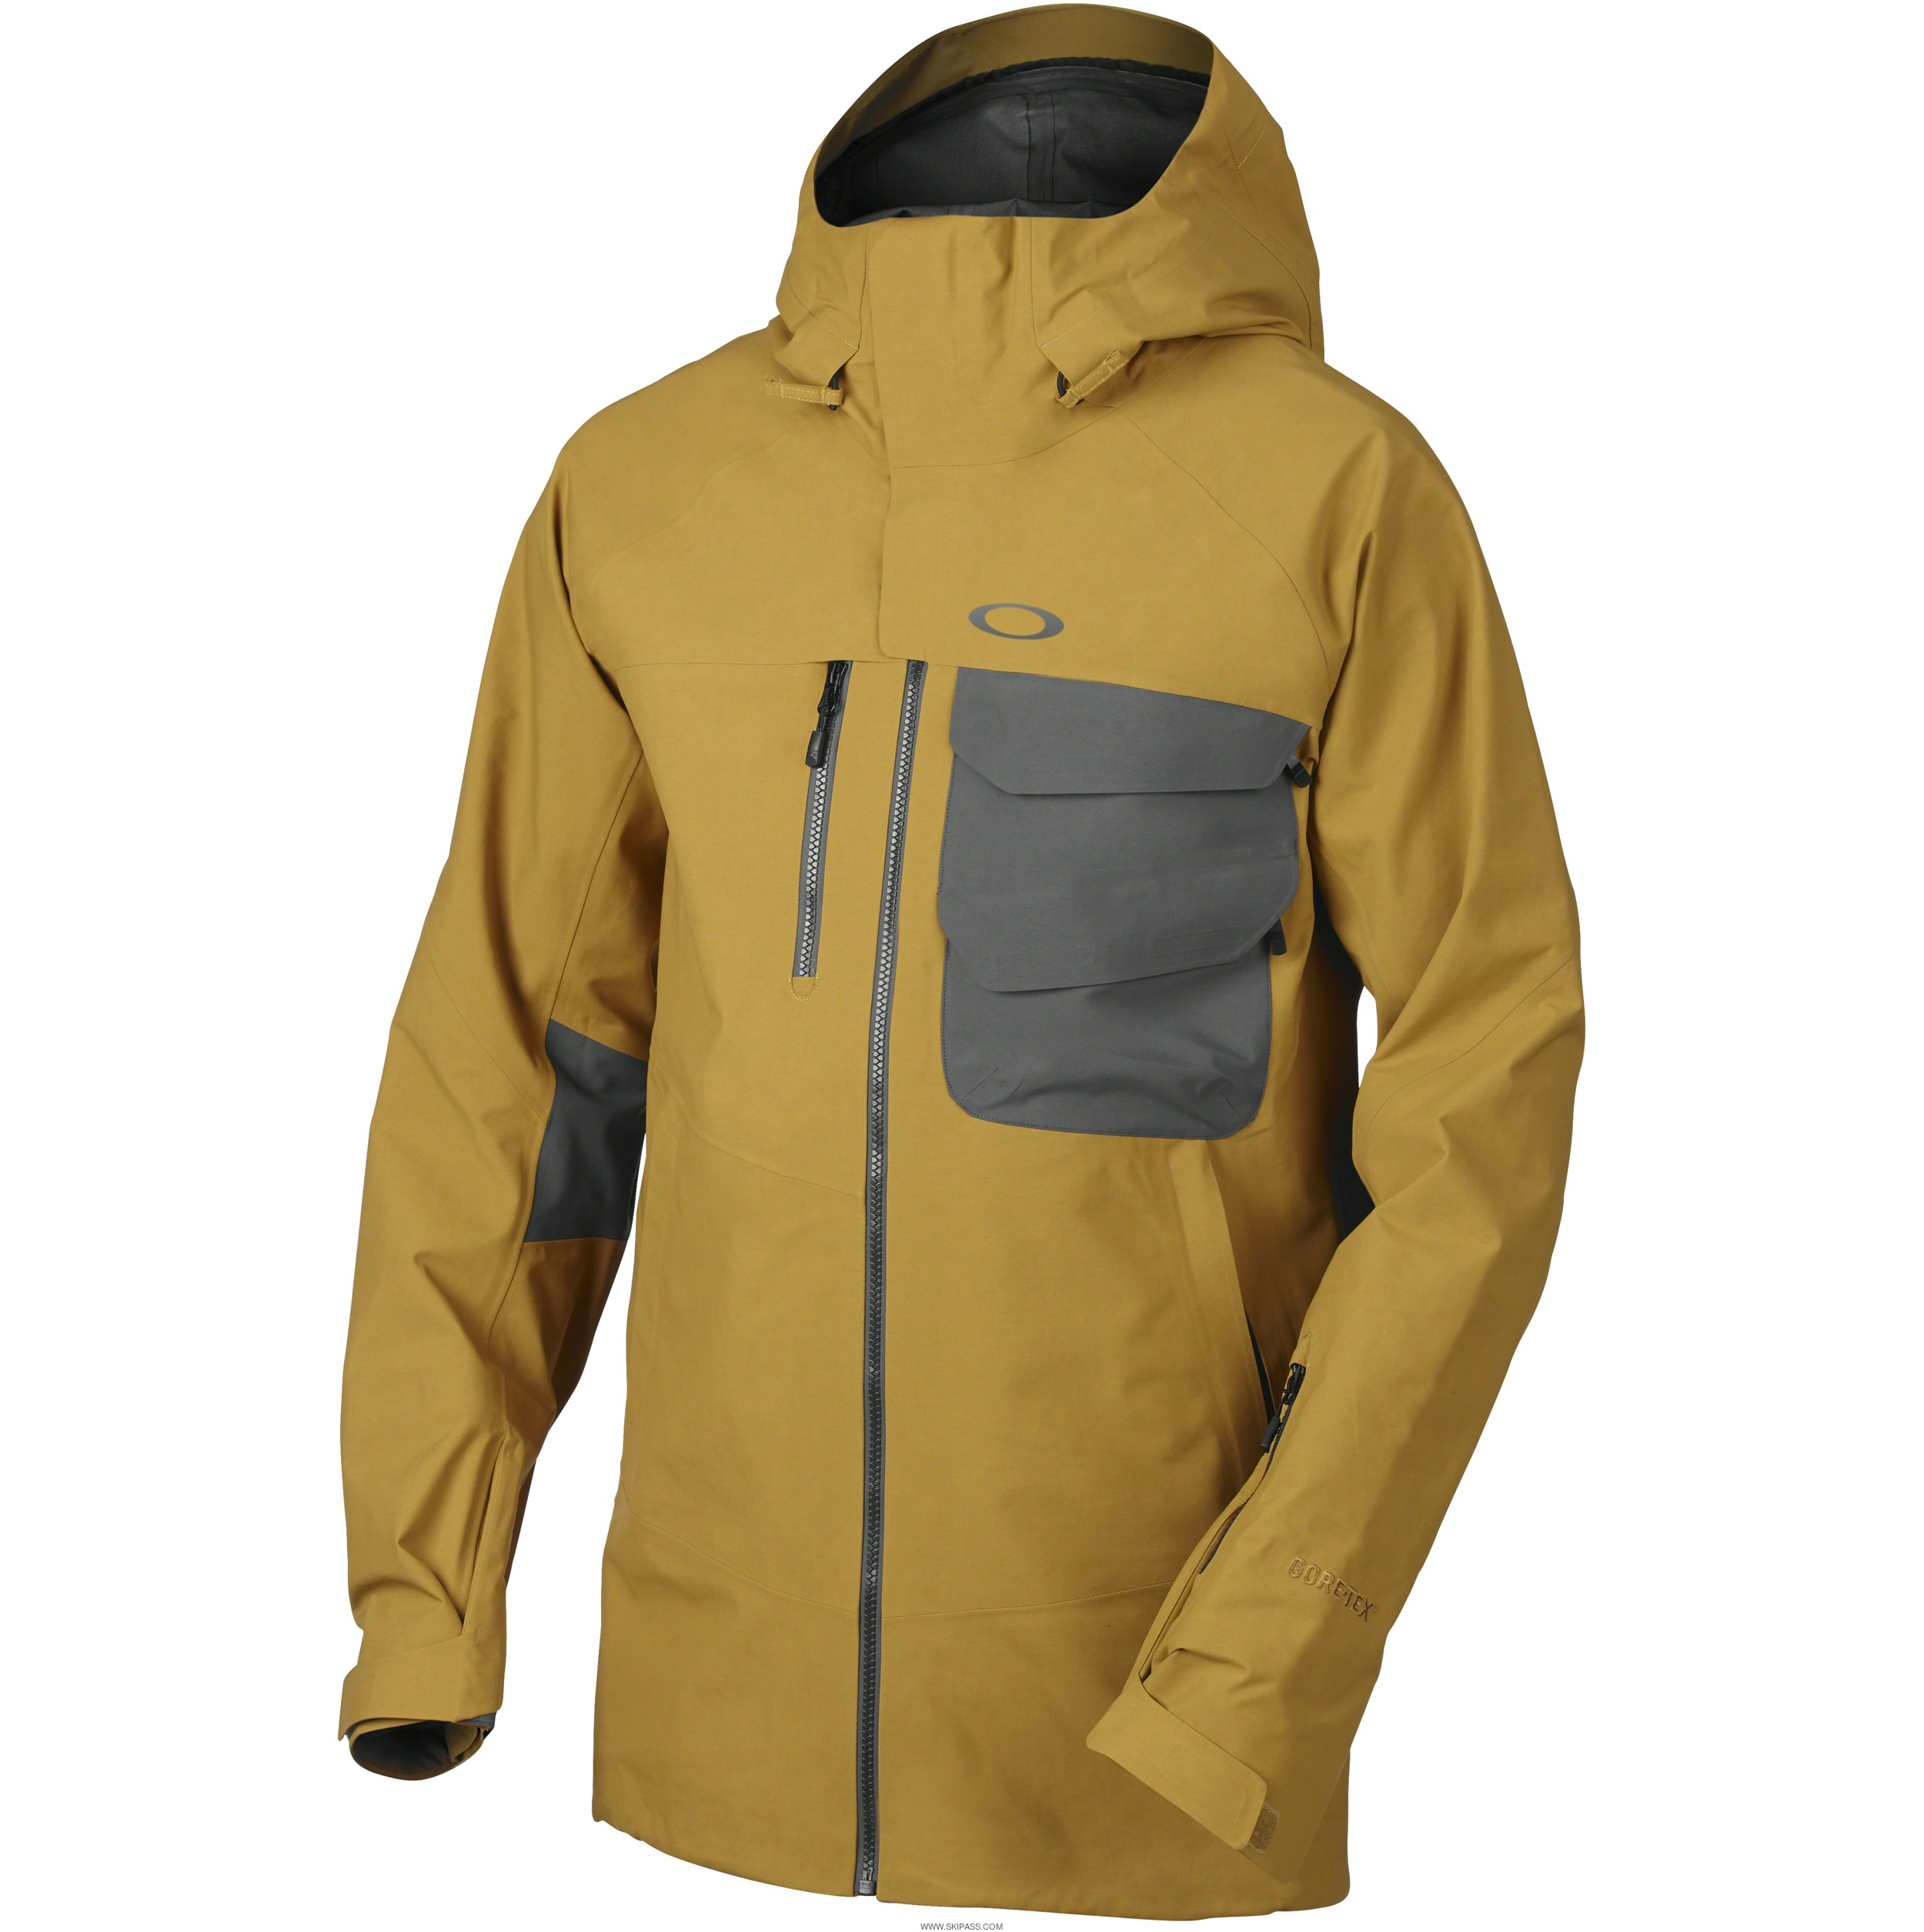 Veste de ski homme oakley allied